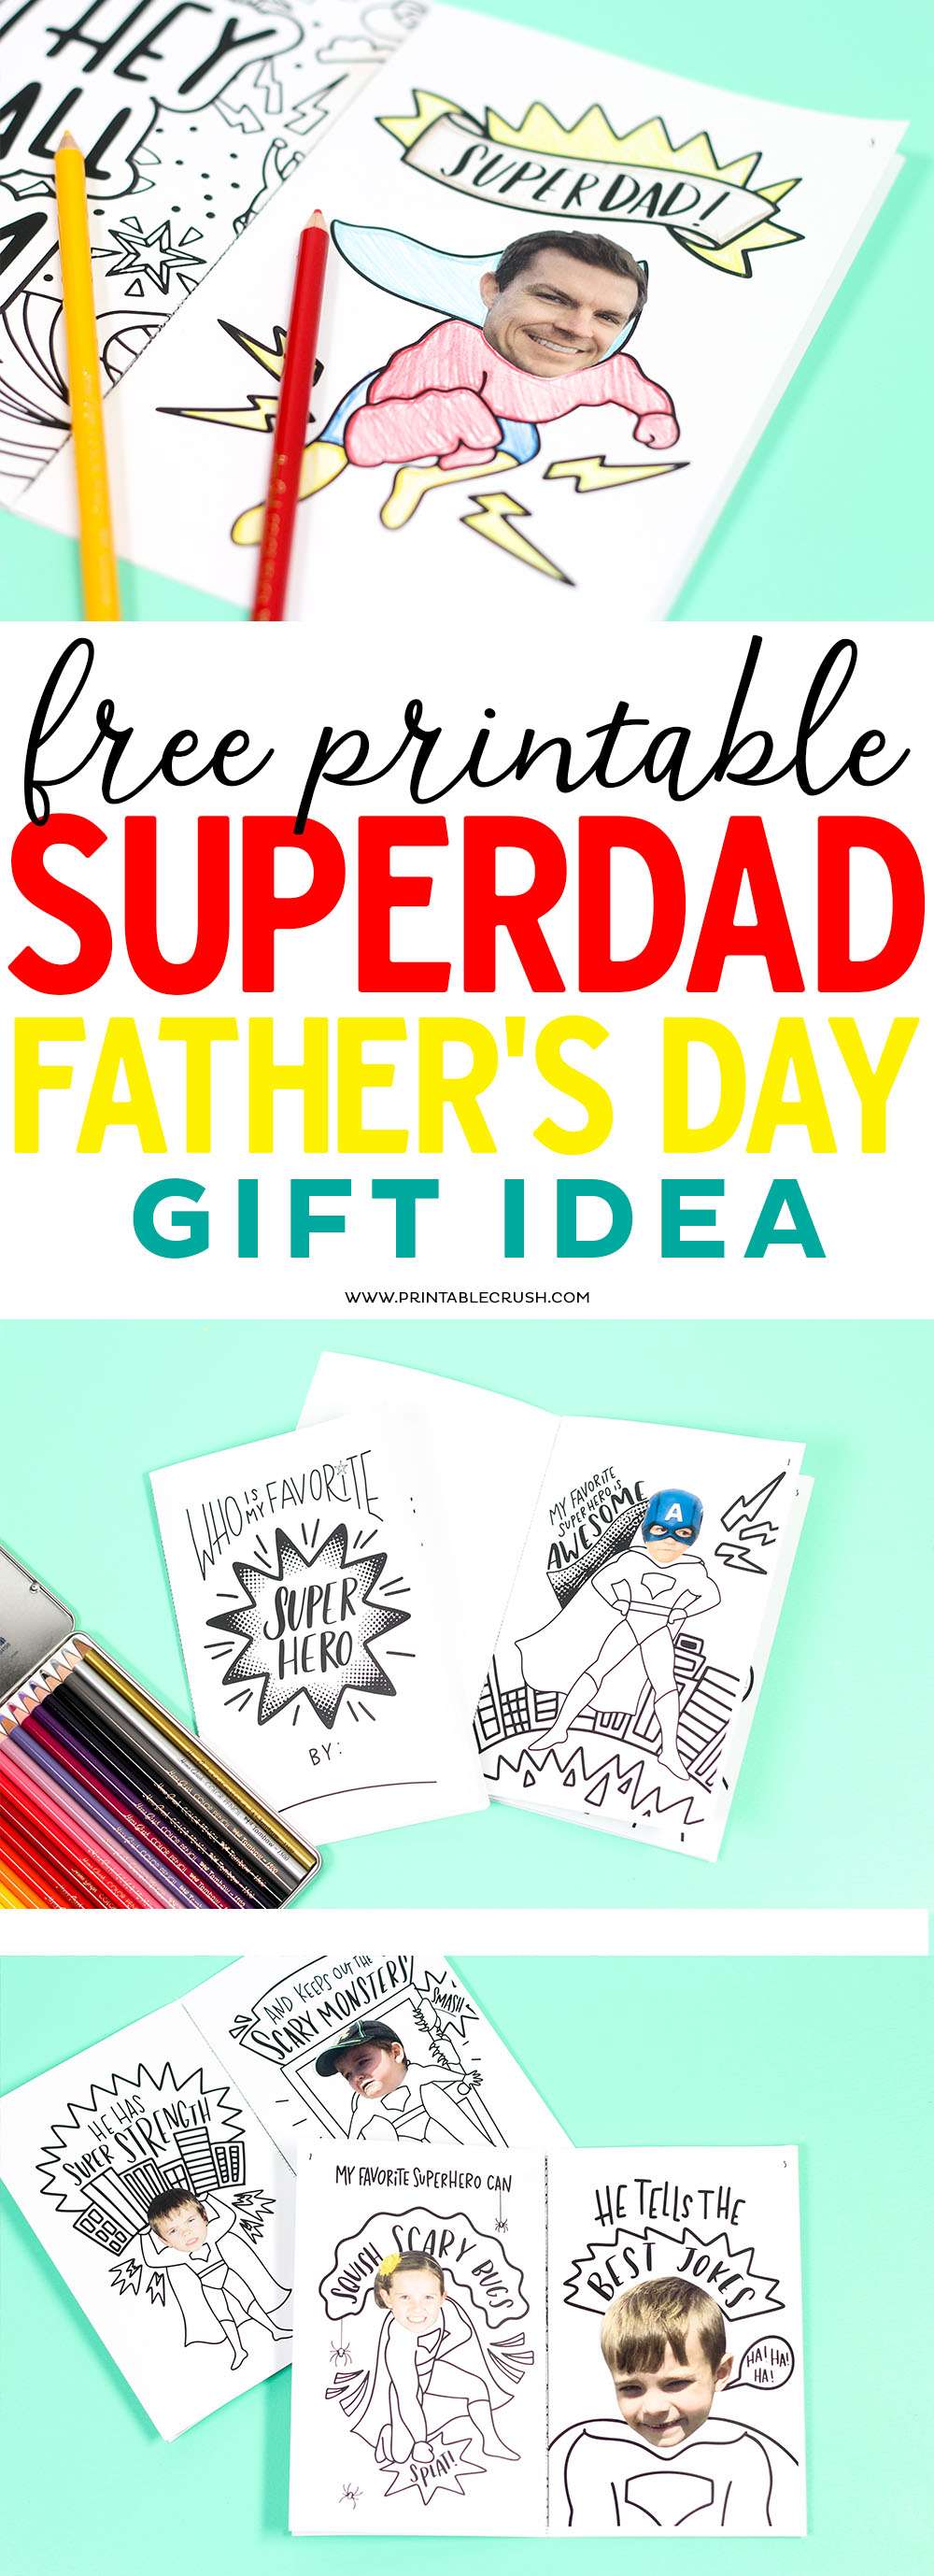 Super Dad will LOVE this personalized Father's Day superhero gift idea!